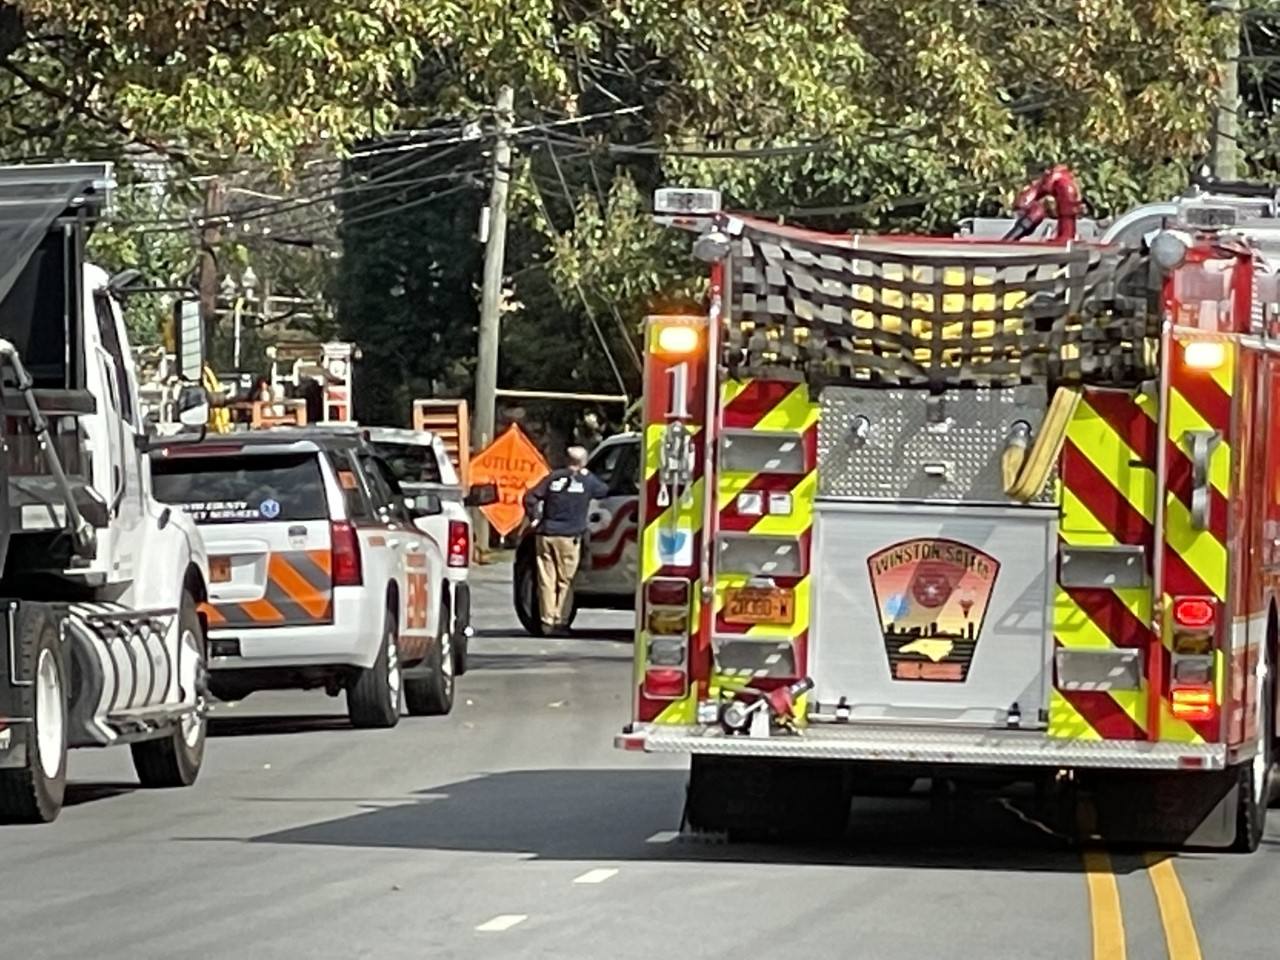 Over 100 residents in Winston-Salem evacuated from Granville Apartments after gas leak